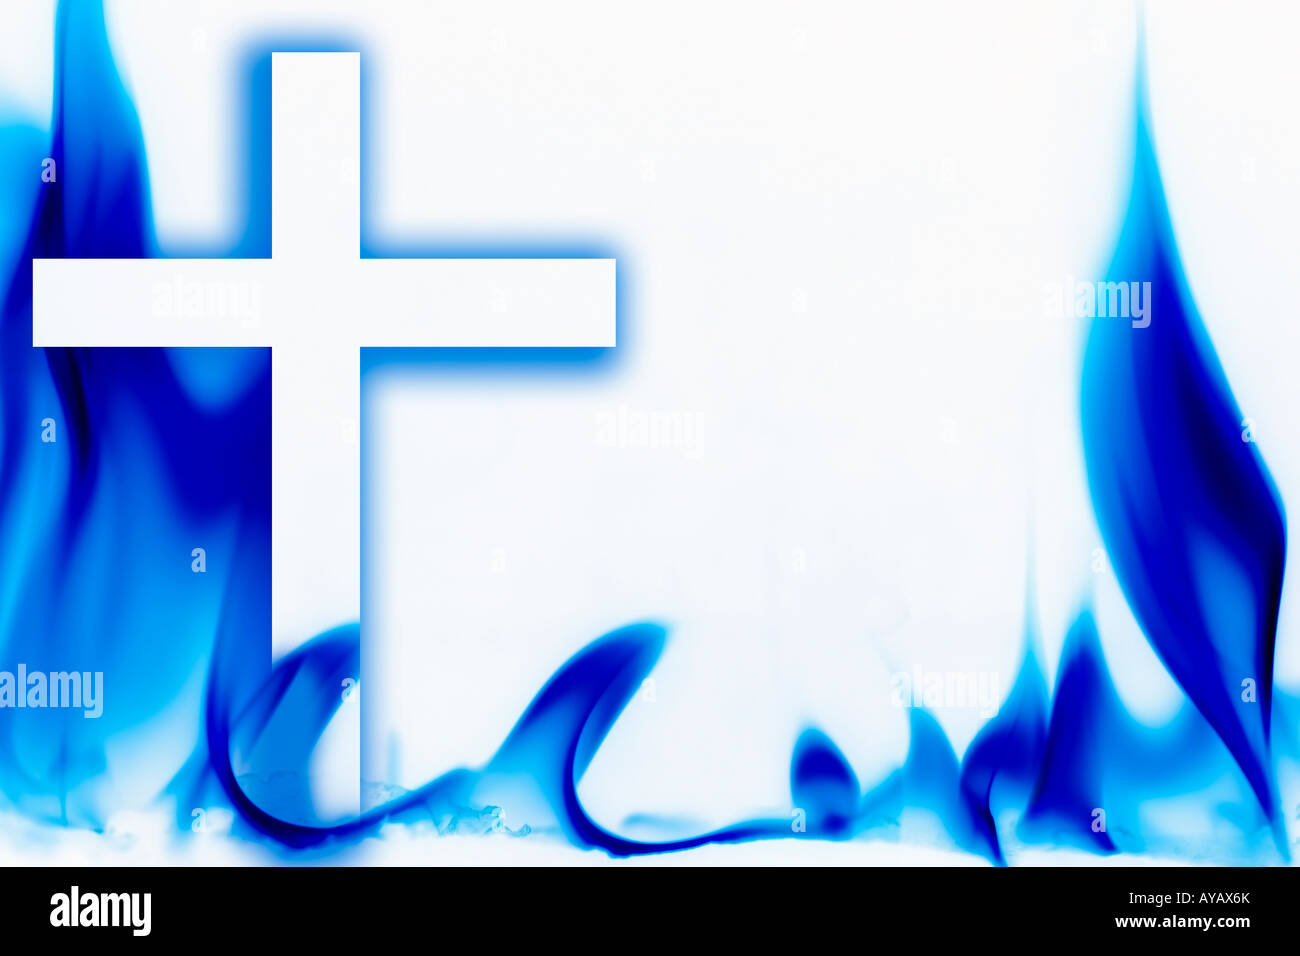 Illustration of fire and the cross - Stock Image